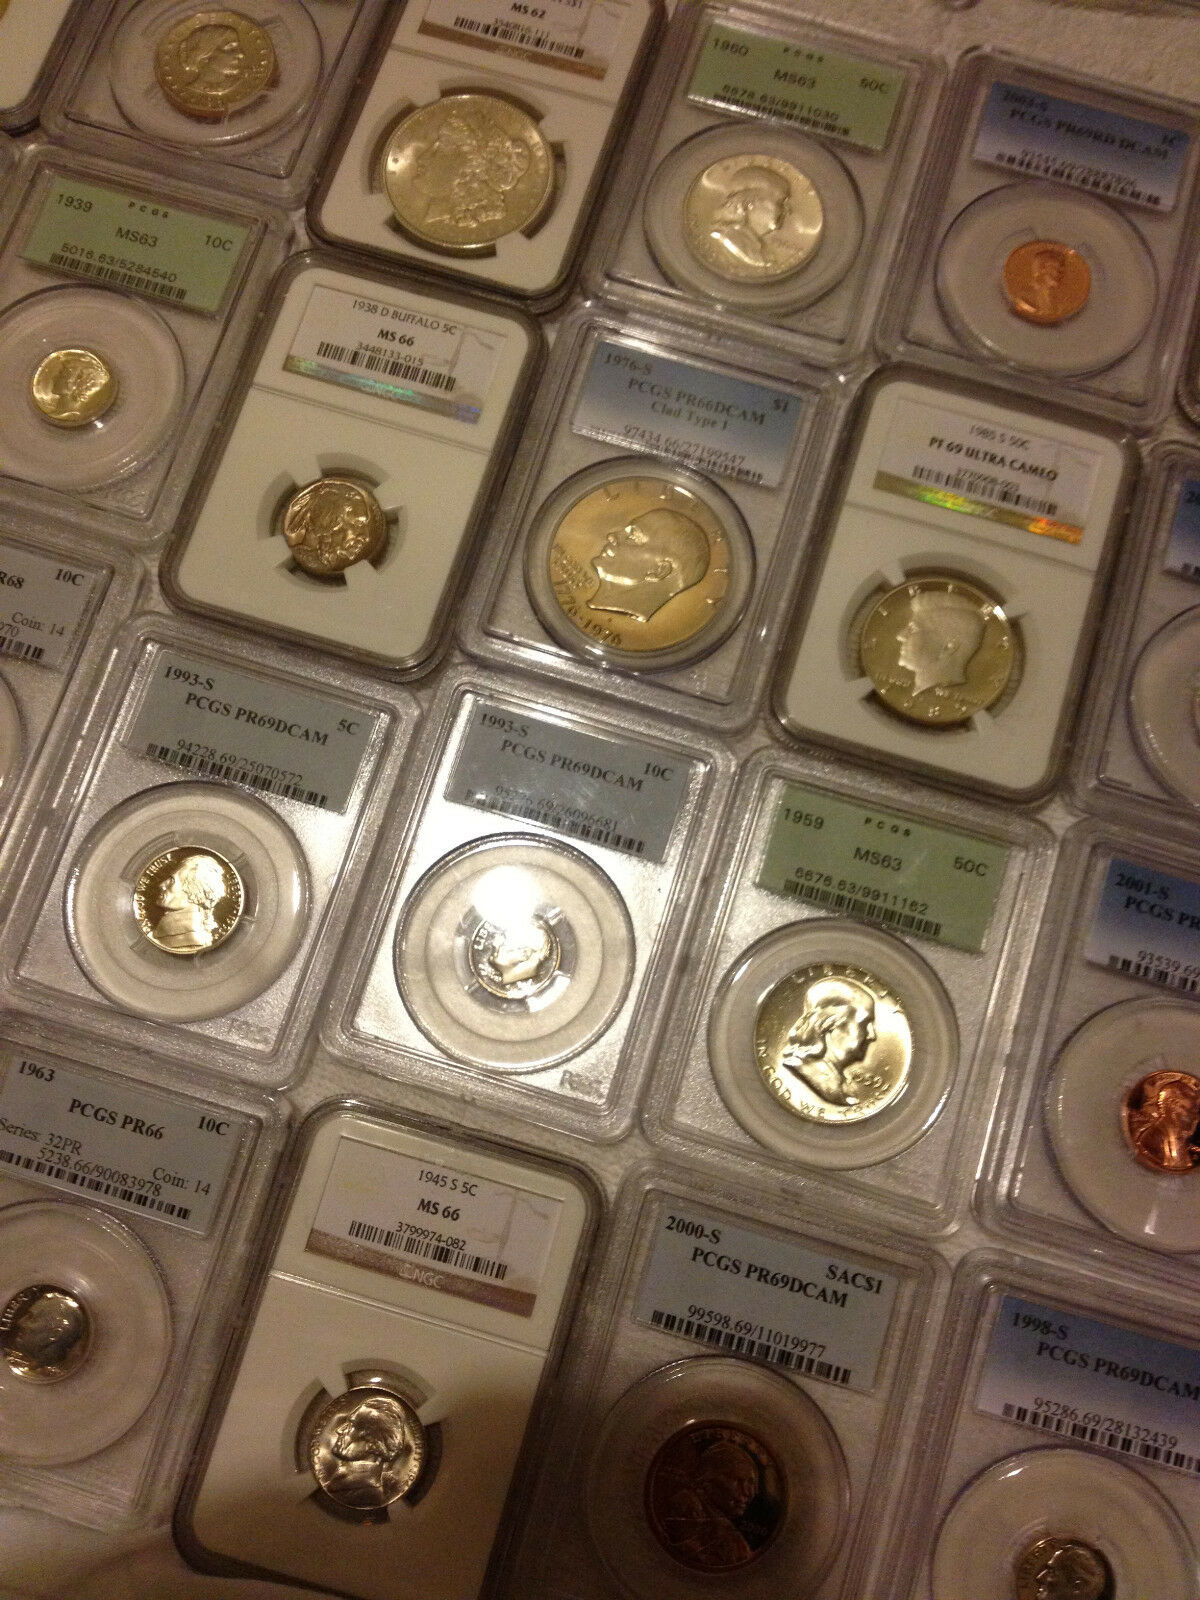 ✯ESTATE SALE OLD US COIN ✯ PCGS NGC GRADED ✯1 SLAB LOT✯ SILVER GOLD ✯ 10 YEARS+✯